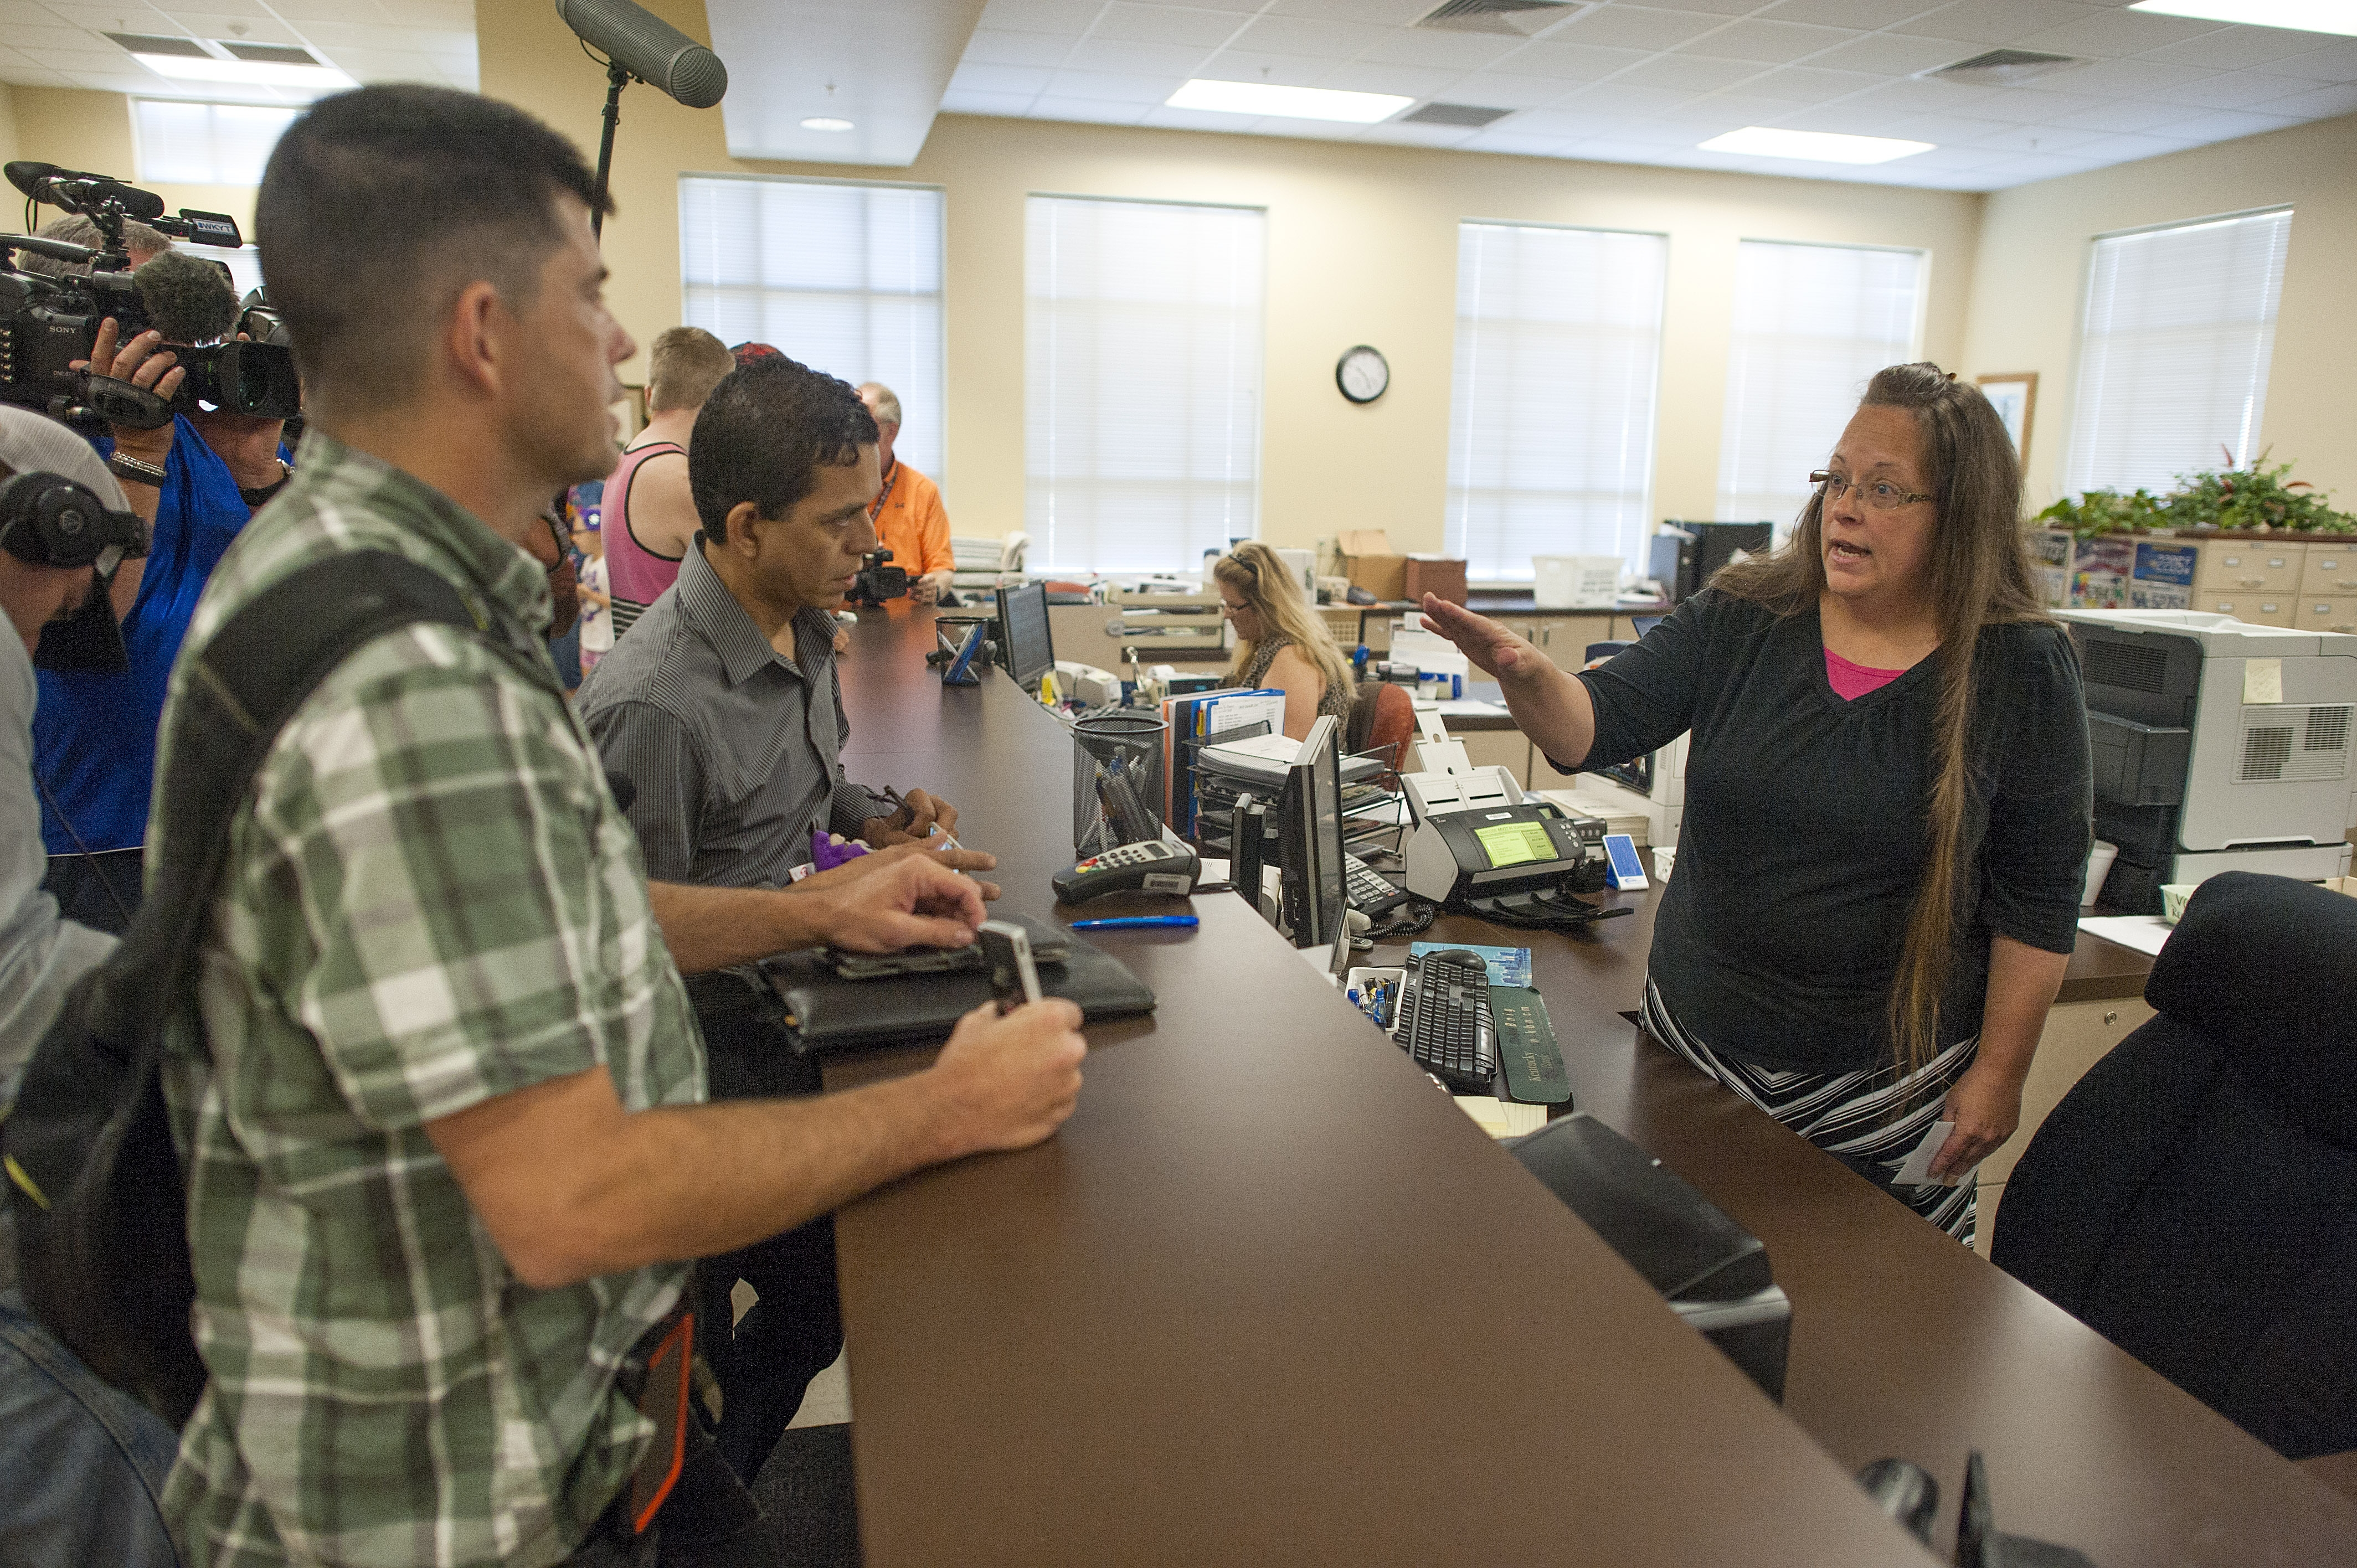 Robbie Blankenship, left, stands next to his partner of 20 years, Jesse Cruz, of Corpus Christie, Texas, as they speak last week with Rowan County Clerk of Courts Kim Davis at the County Clerk's Office in Morehead, Ky. Davis, who cited a religious objection to issuing licenses for same-sex marriage, went to jail, creating an unnecessary crisis. On Monday, the judge who jailed Davis released her.